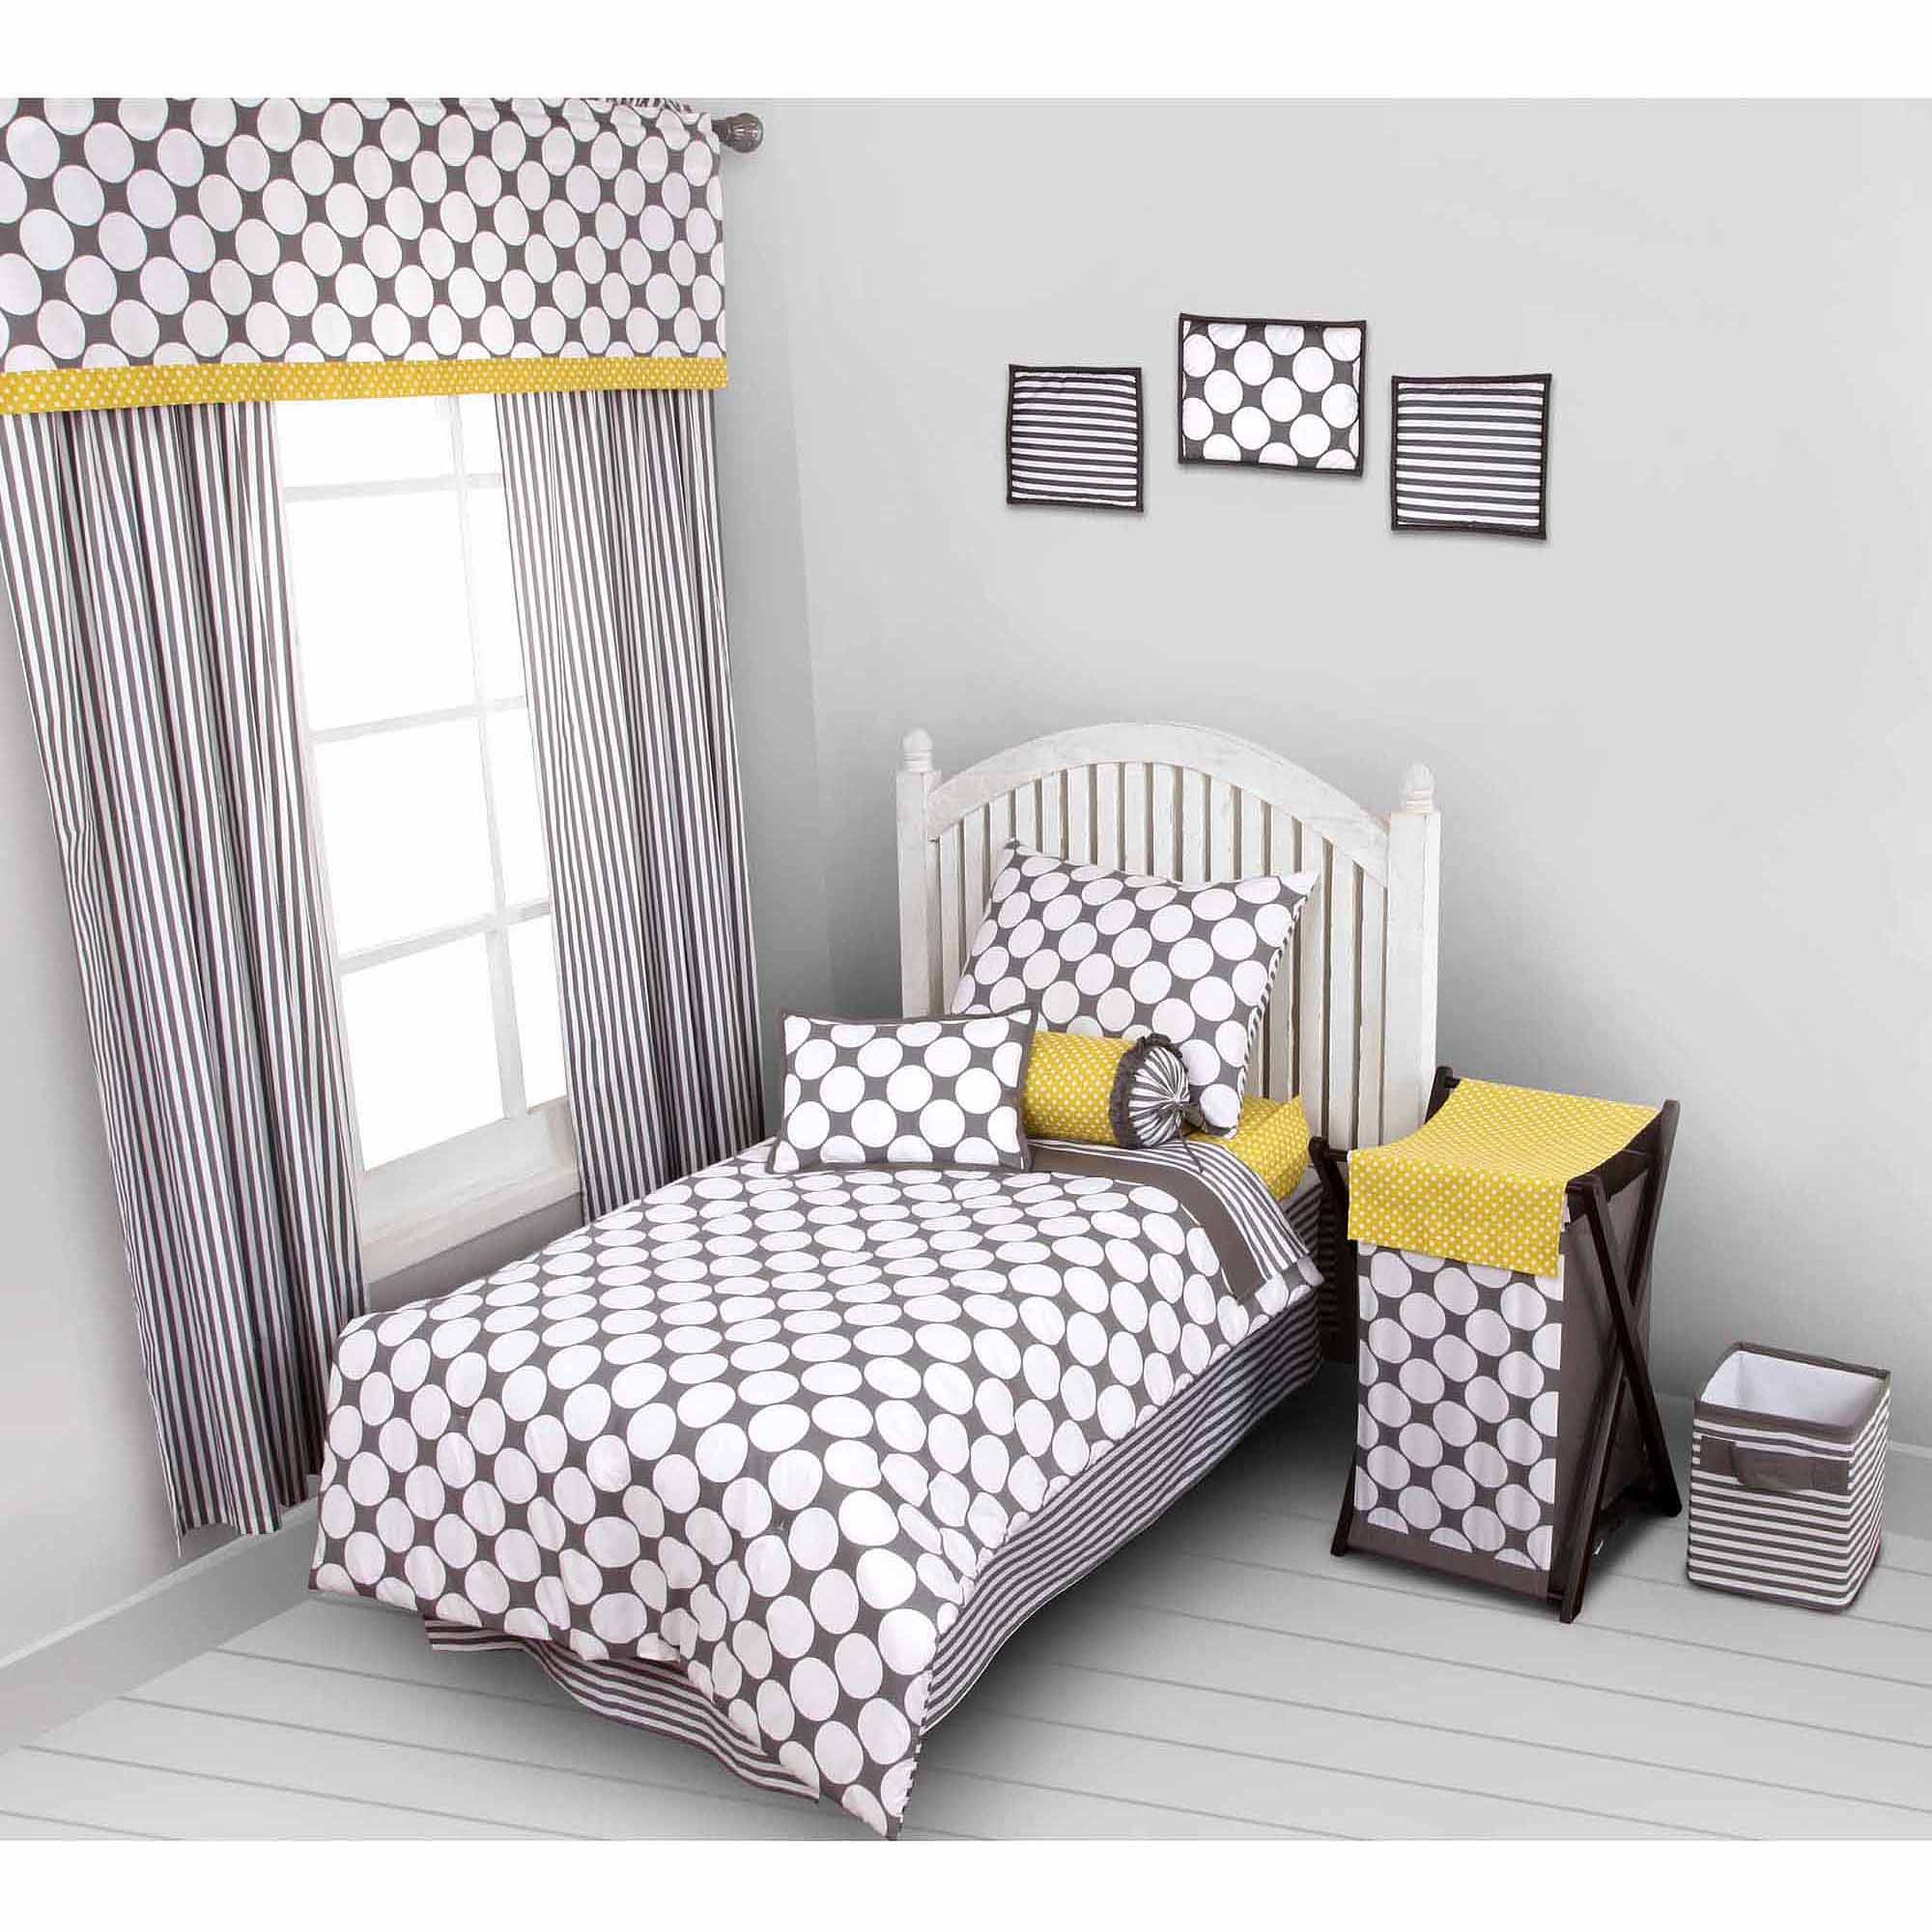 Bacati - Dots/Pin Stripes 4-Piece Toddler Bedding set 100% Cotton percale,  Gray/Yellow